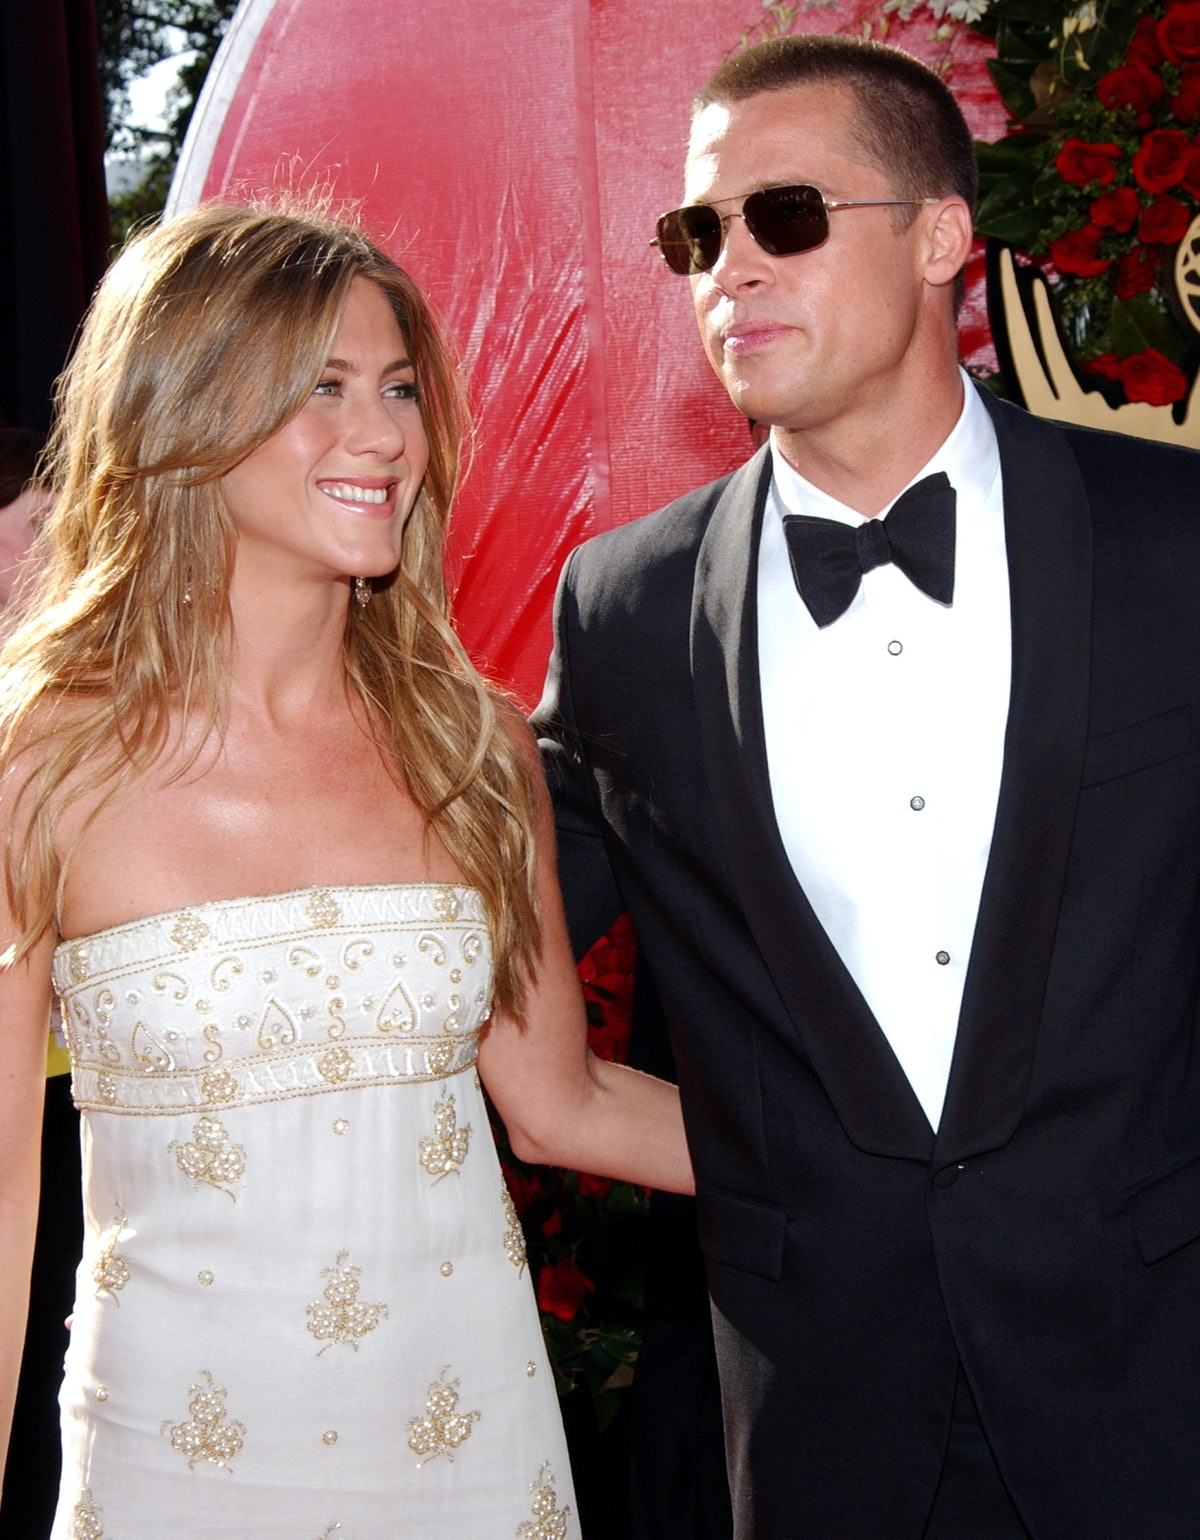 Jennifer Aniston and Brad Pitt accompany each other on the red carpet.